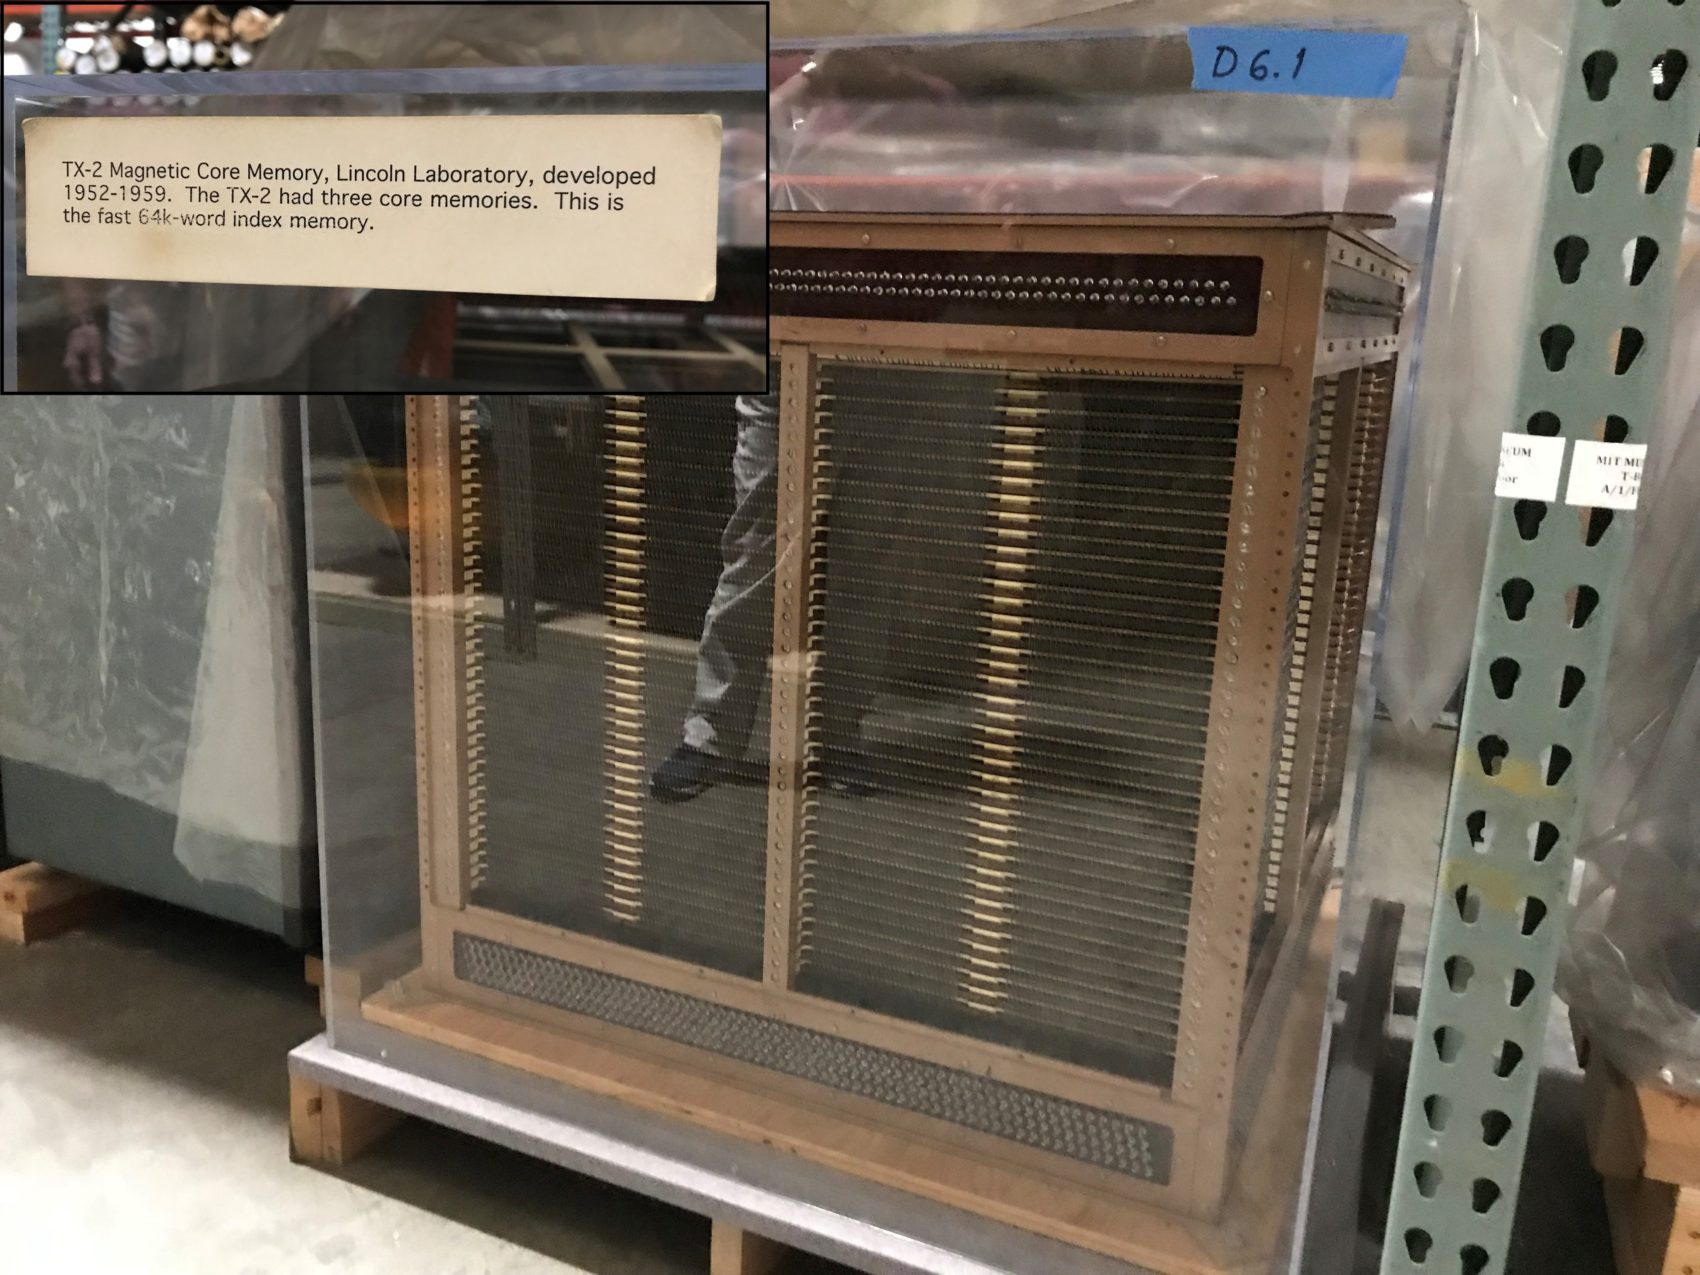 In a time before silicon chips, this oversize memory core, roughly 8 cubic feet, was part of a room-size computer called the TX-2. (Callum Borchers/WBUR)